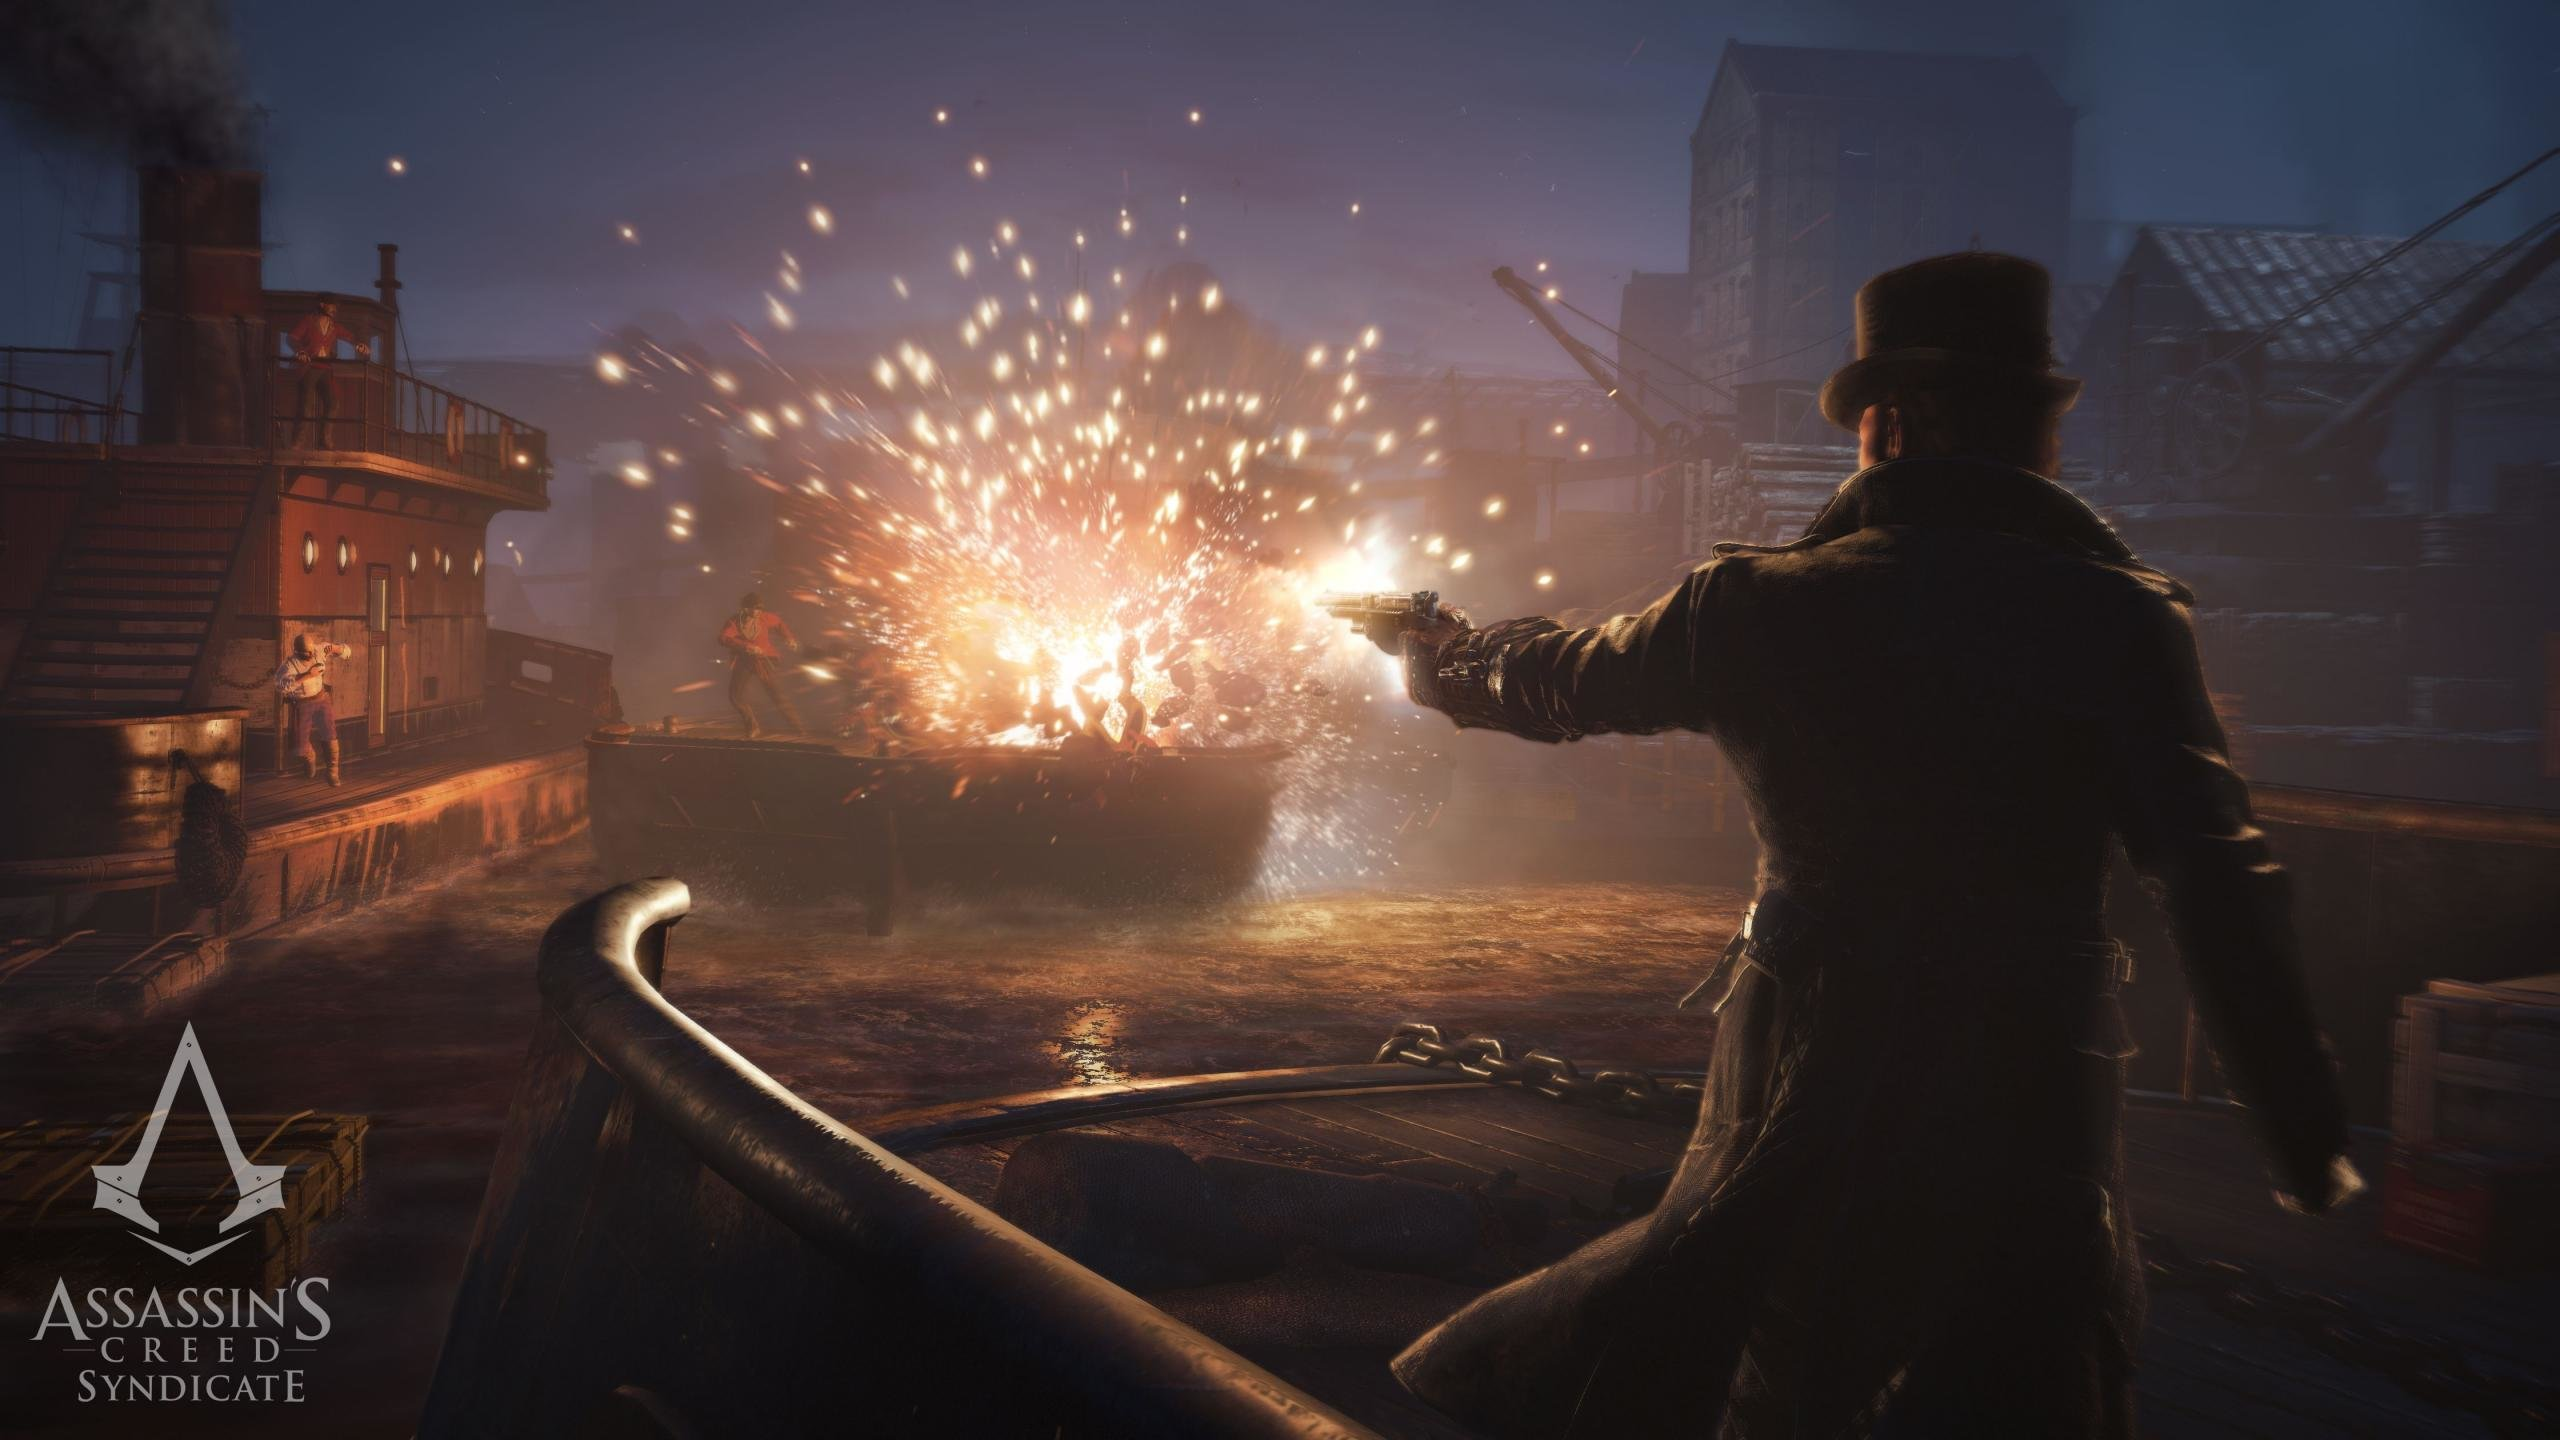 Download Hd 2560x1440 Assassin S Creed Syndicate Desktop Wallpaper Id 260281 For Free